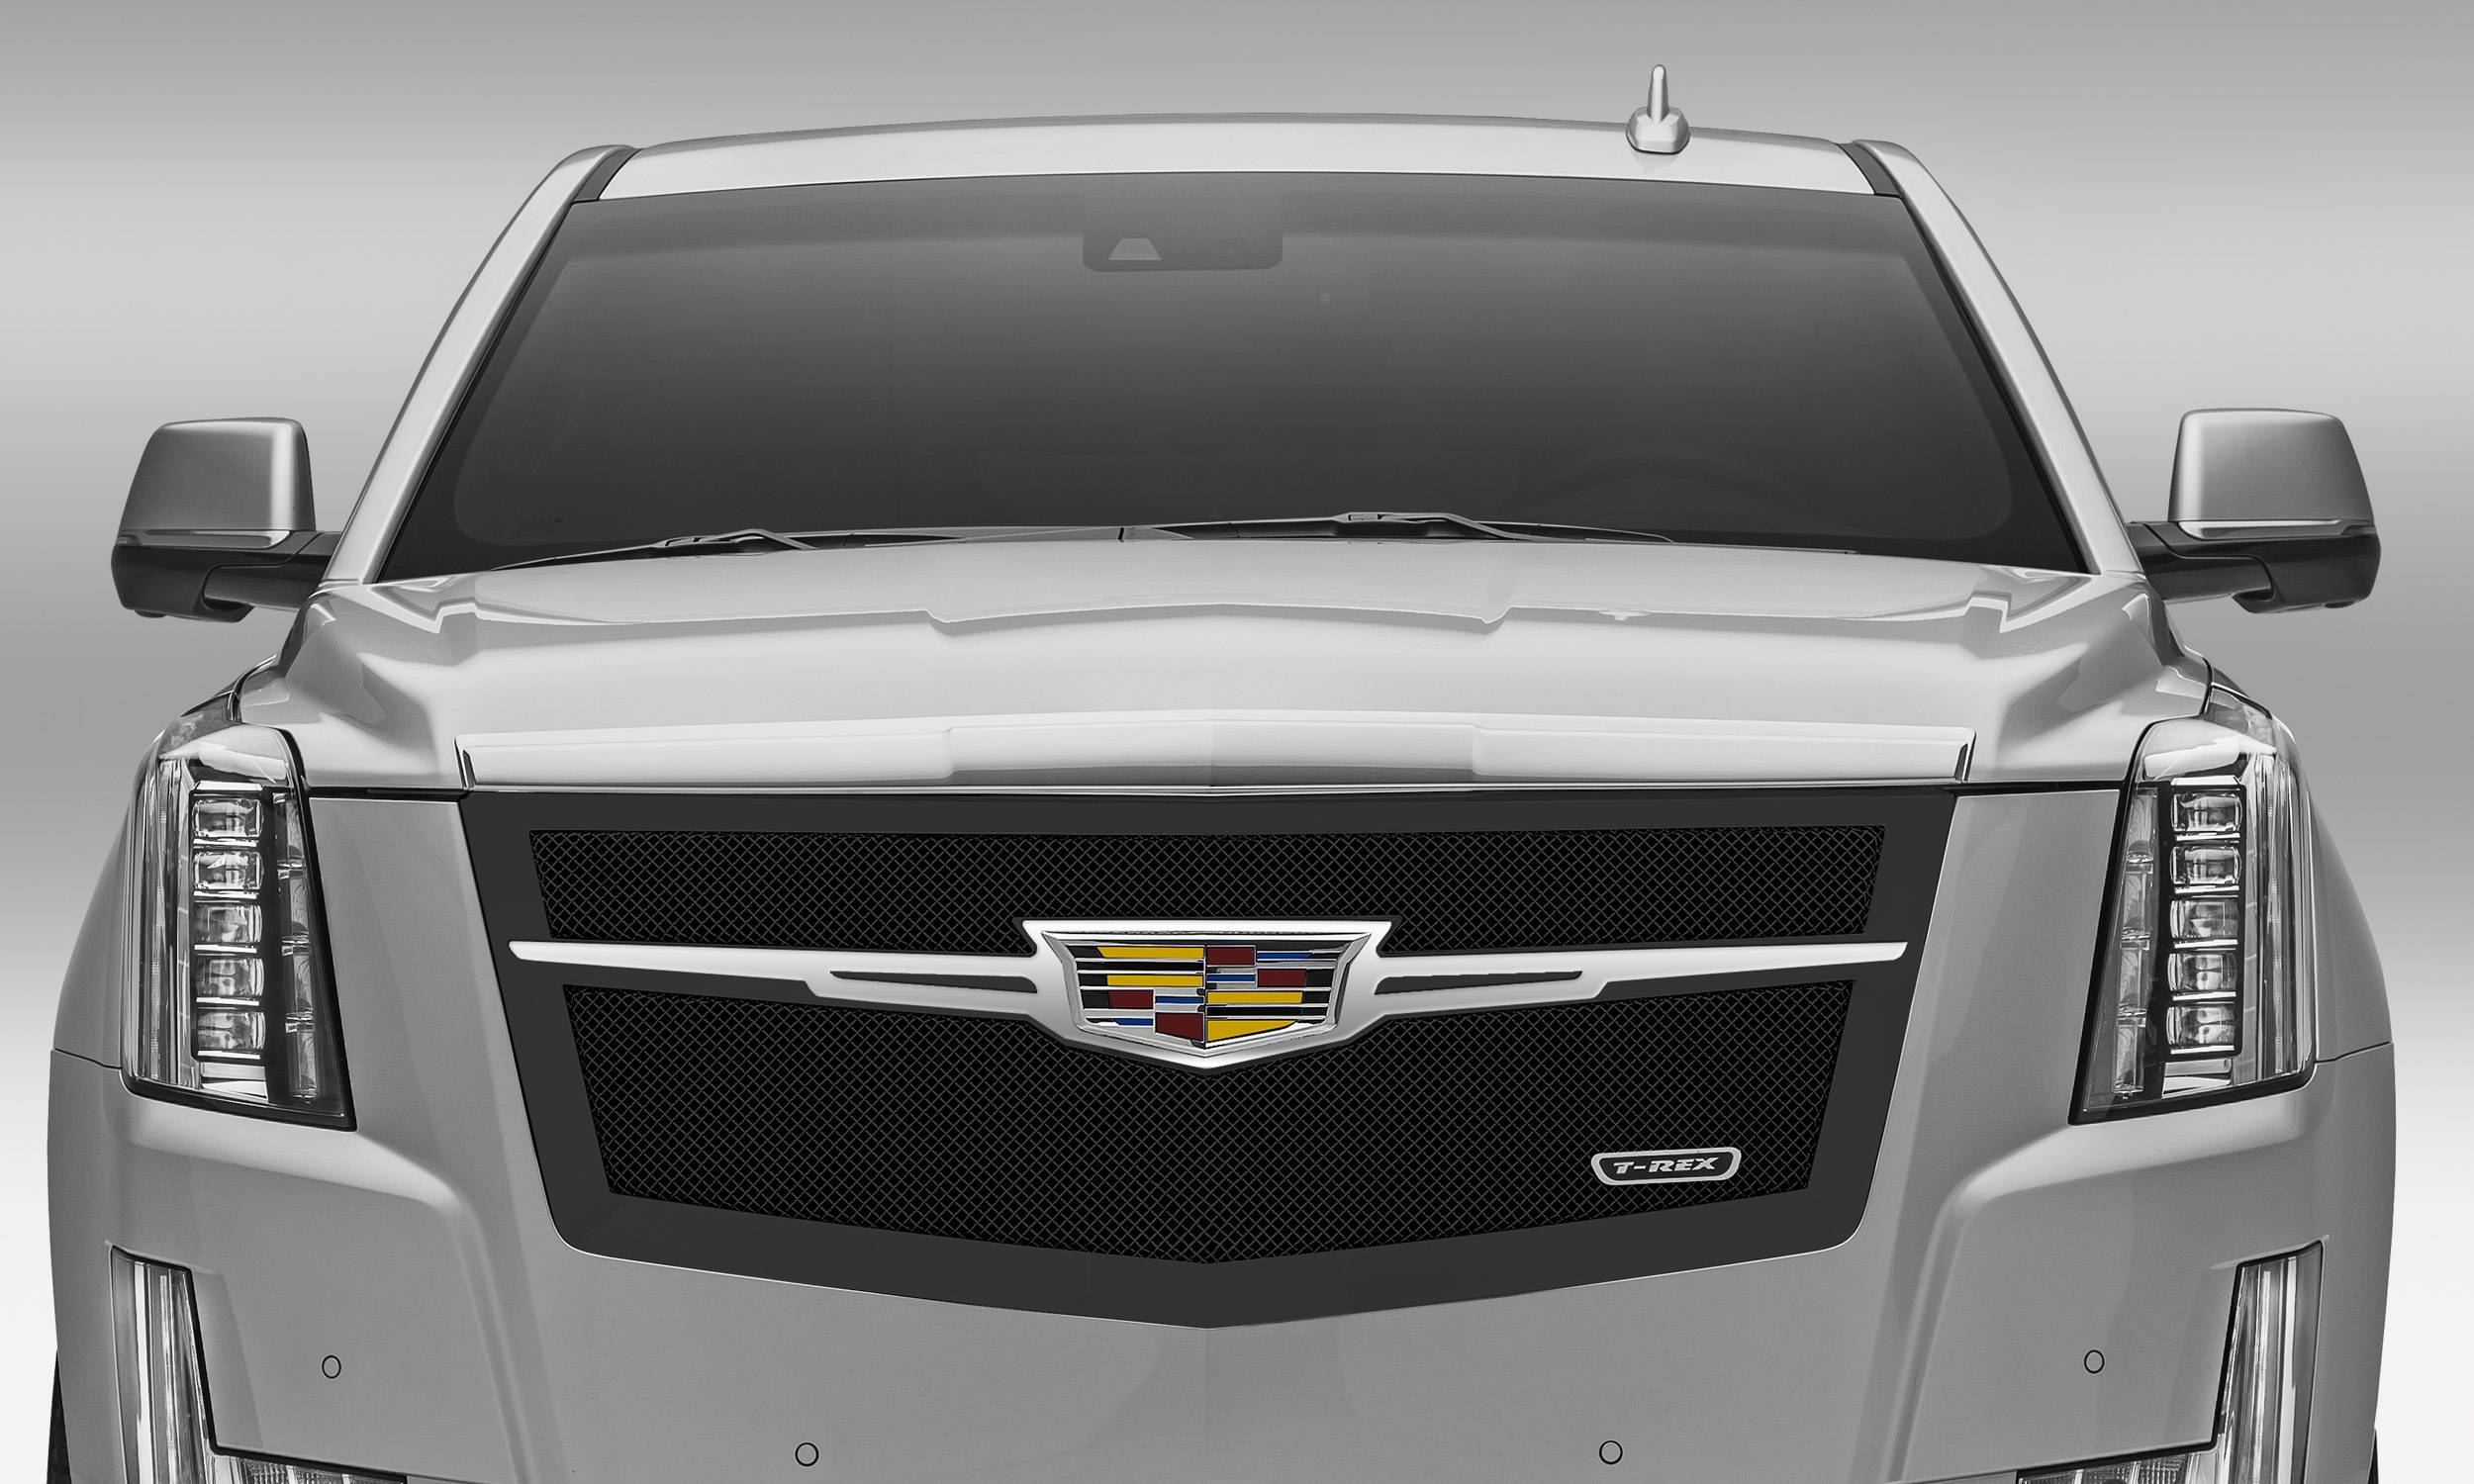 T-REX Grilles - 2015 Escalade Upper Class Series Main Grille, Black with Chrome Plated Center Trim Piece, 1 Pc, Replacement - PN #51185